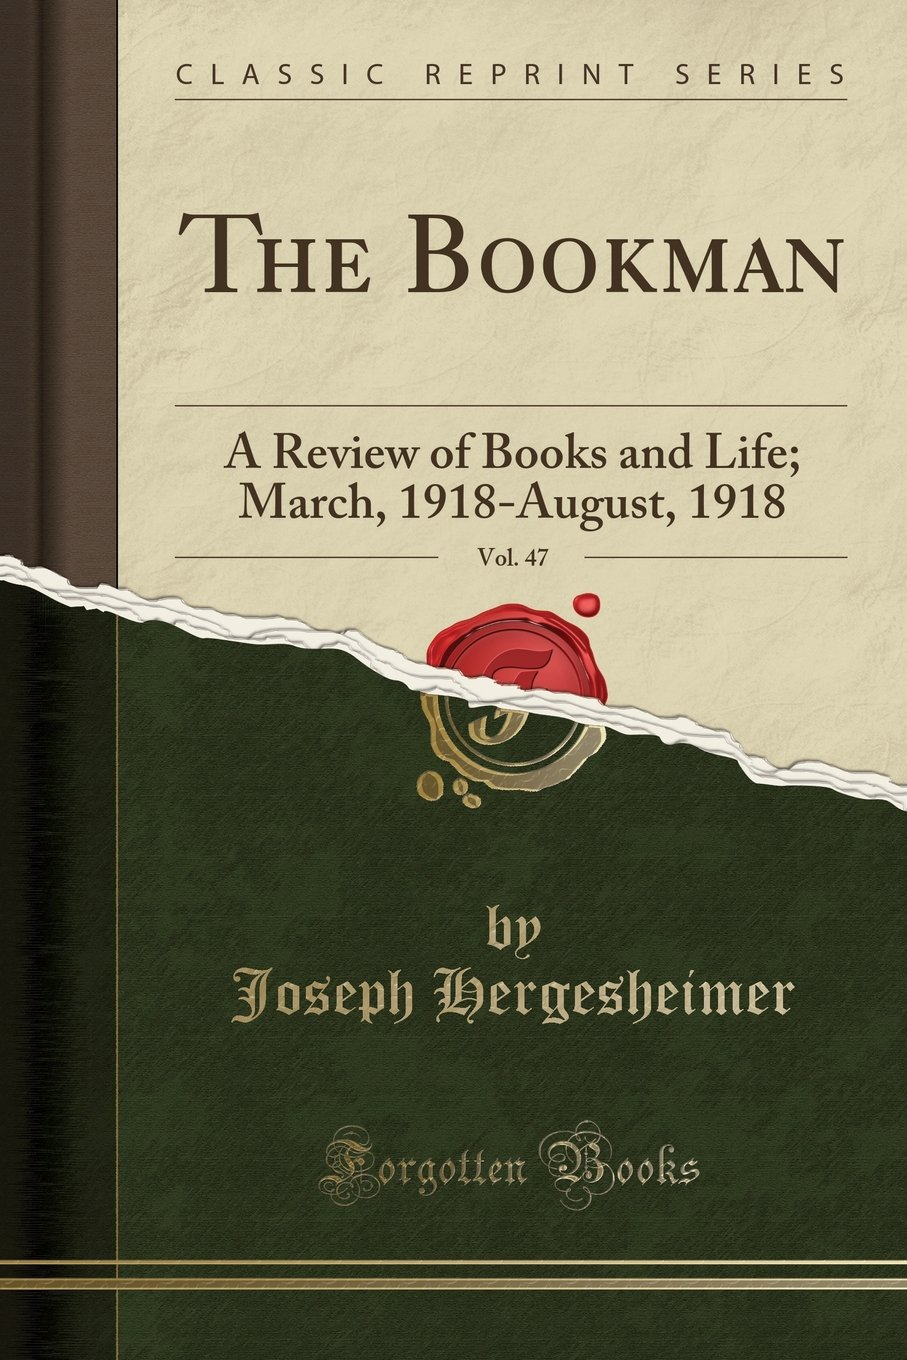 The Bookman, Vol. 47: A Review of Books and Life; March, 1918-August, 1918 (Classic Reprint) pdf